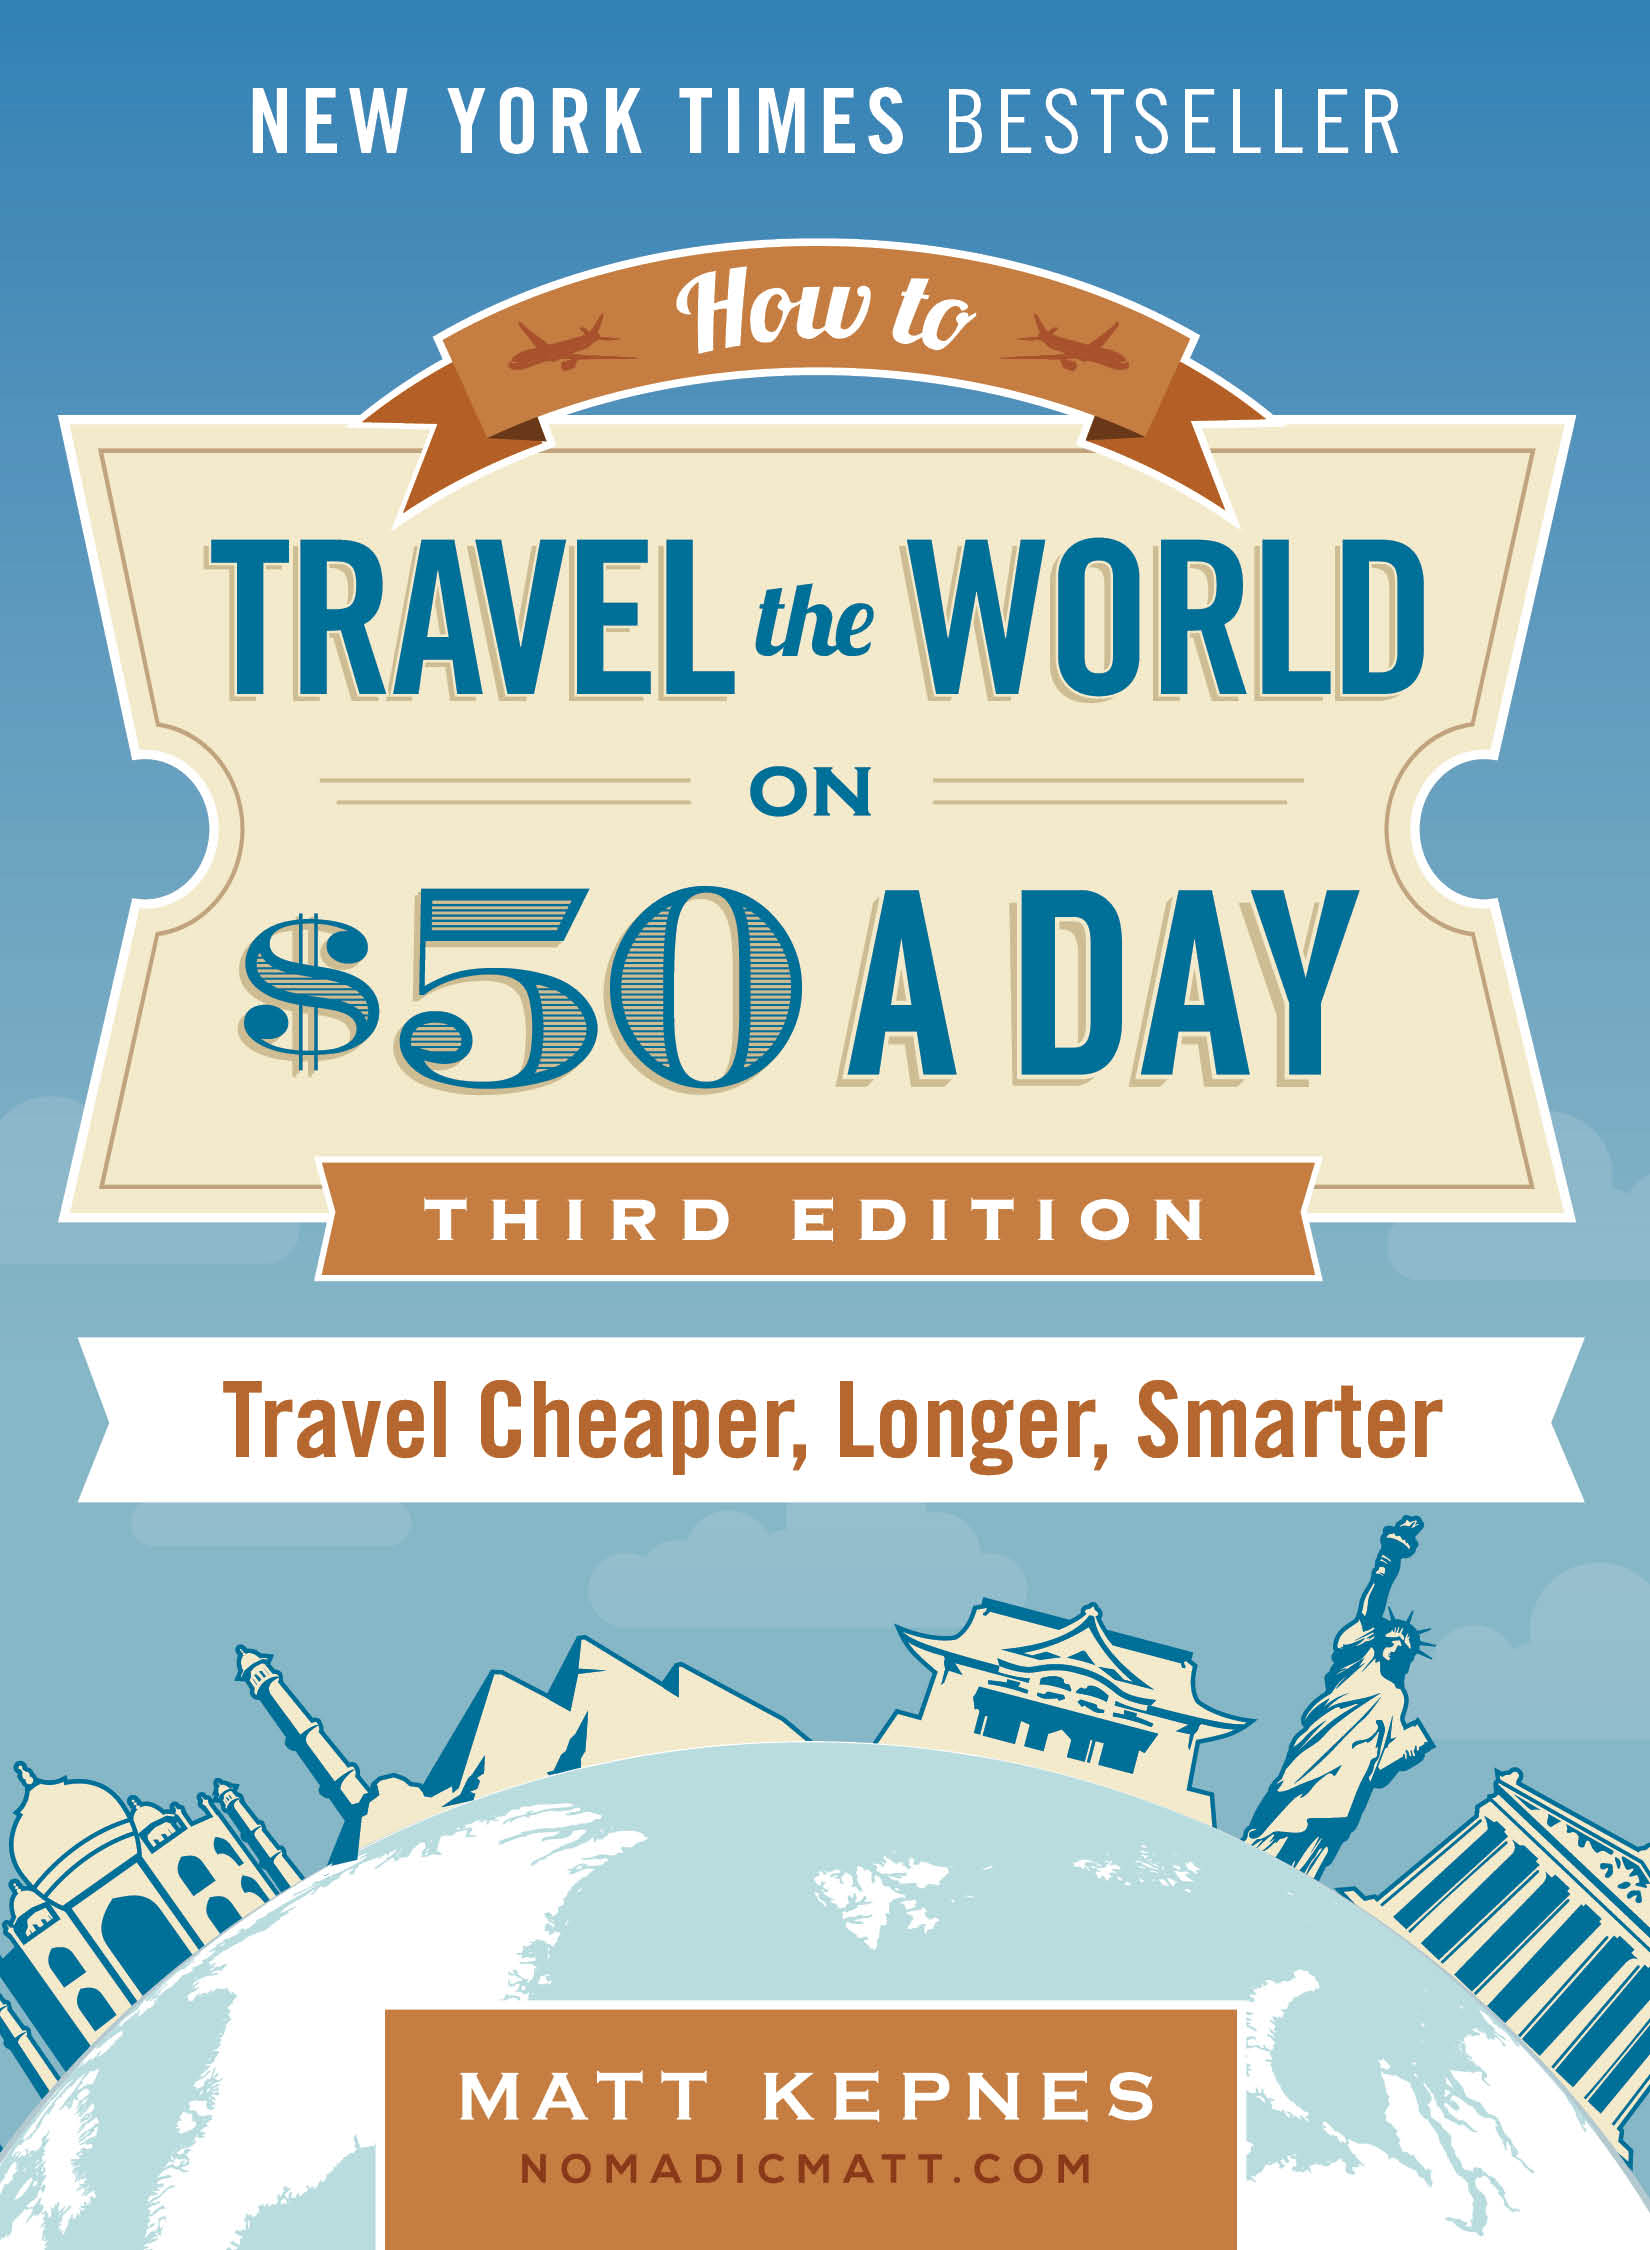 Nomadic Matt's How to Travel the World on $50 a Day